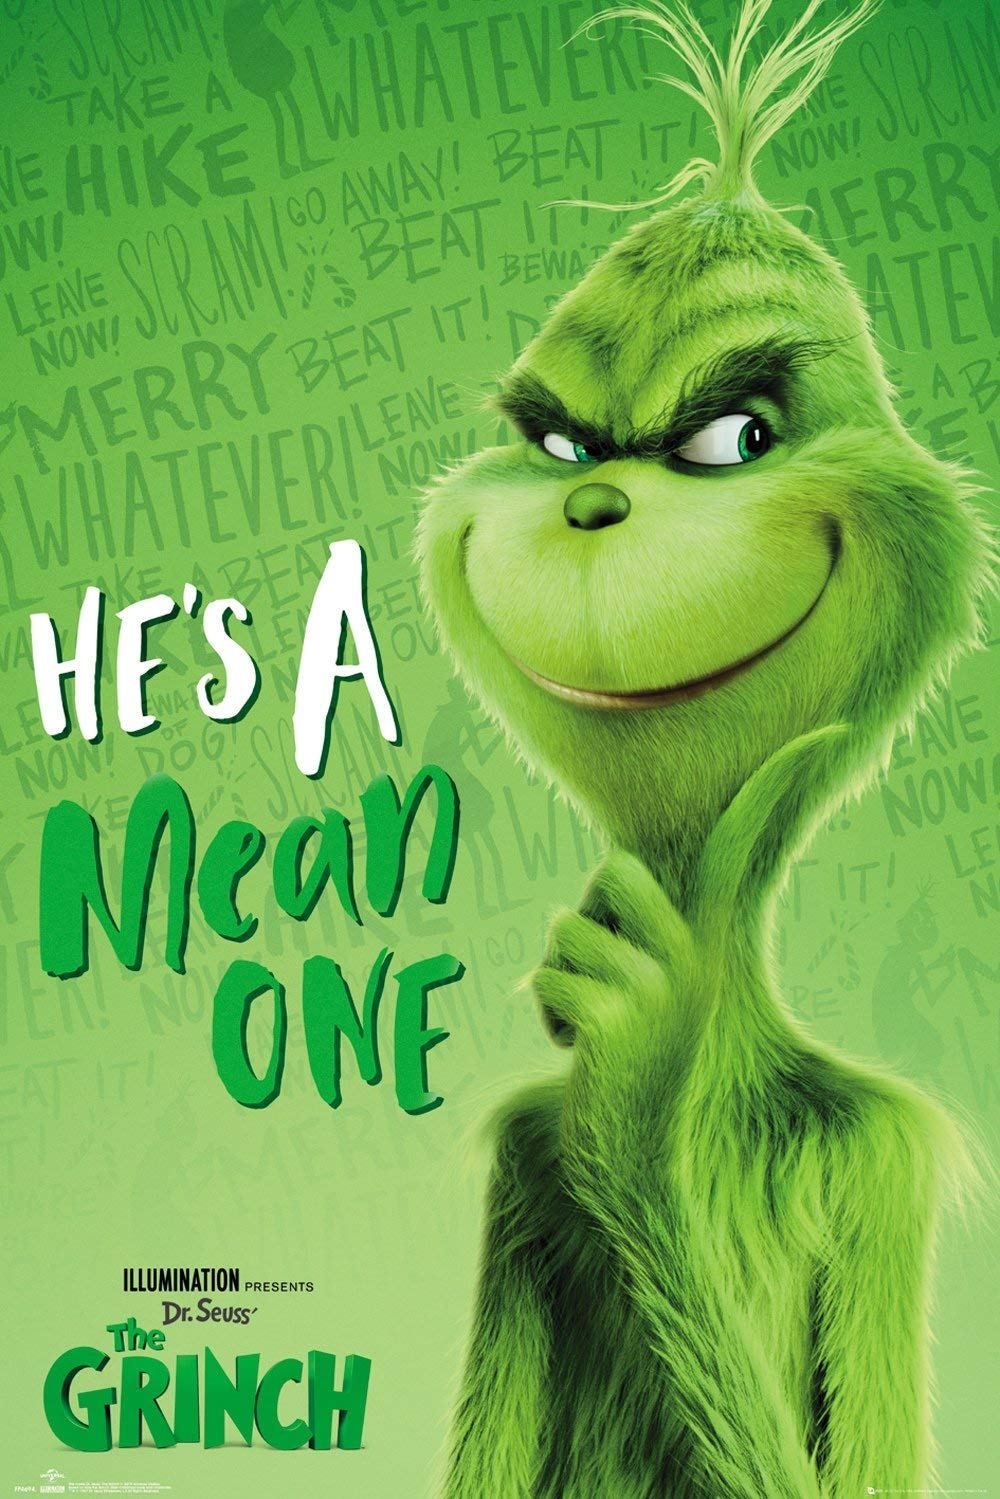 "The Grinch - Movie Poster (Grinch Solo - He's A Mean One) (Size: 24"" x 36"")"